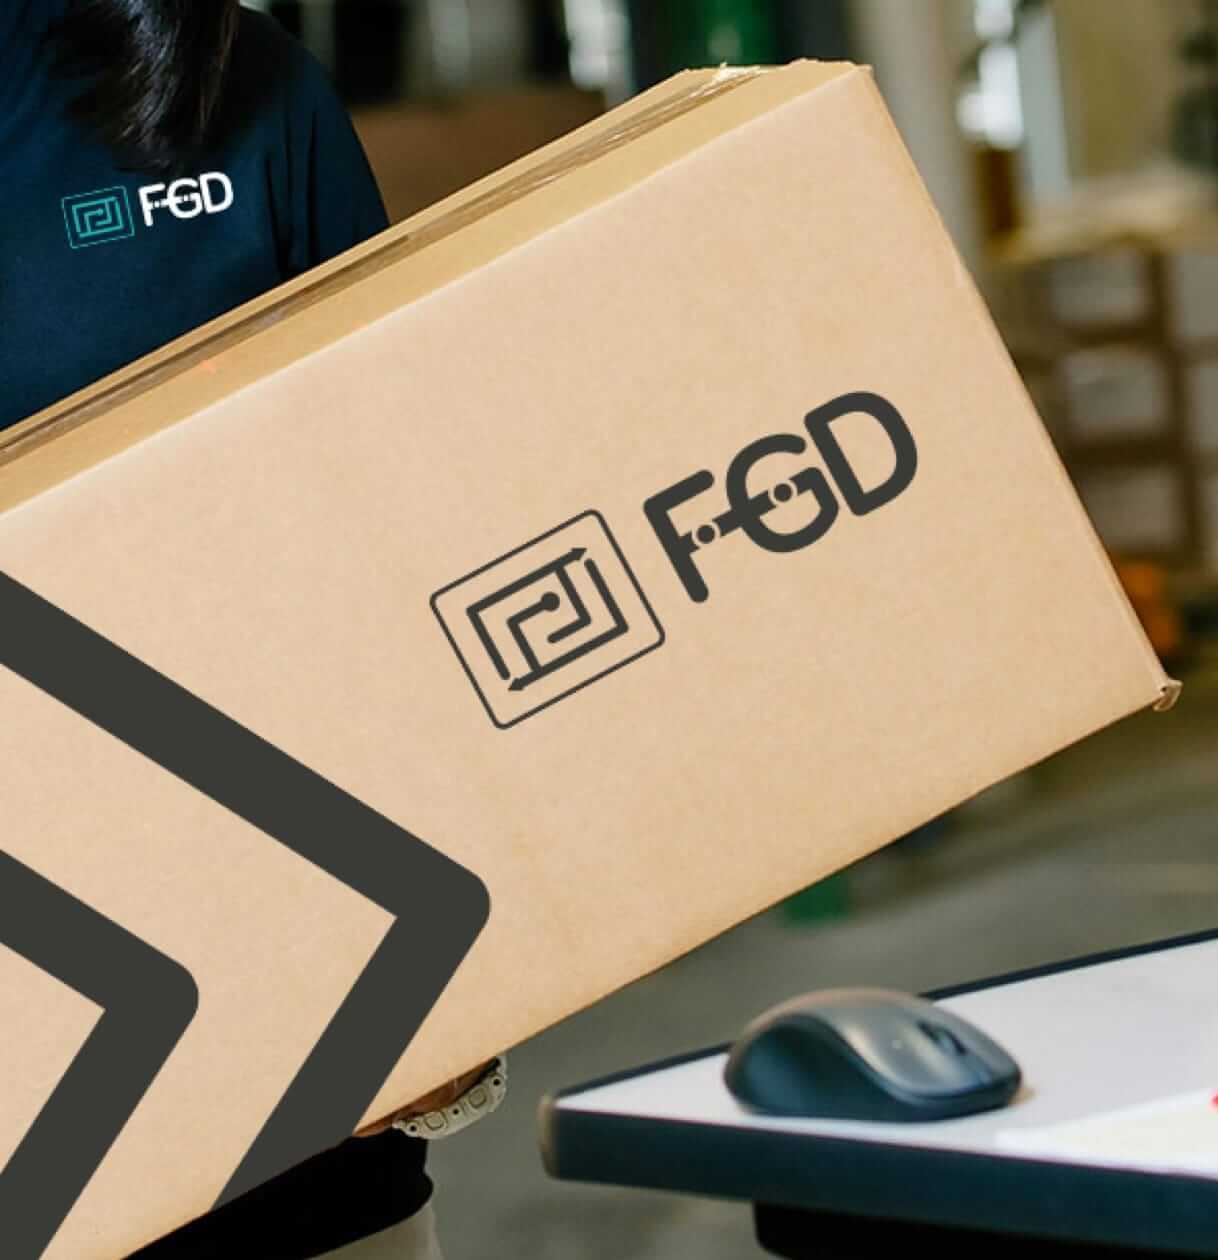 FGD Box Delivery image